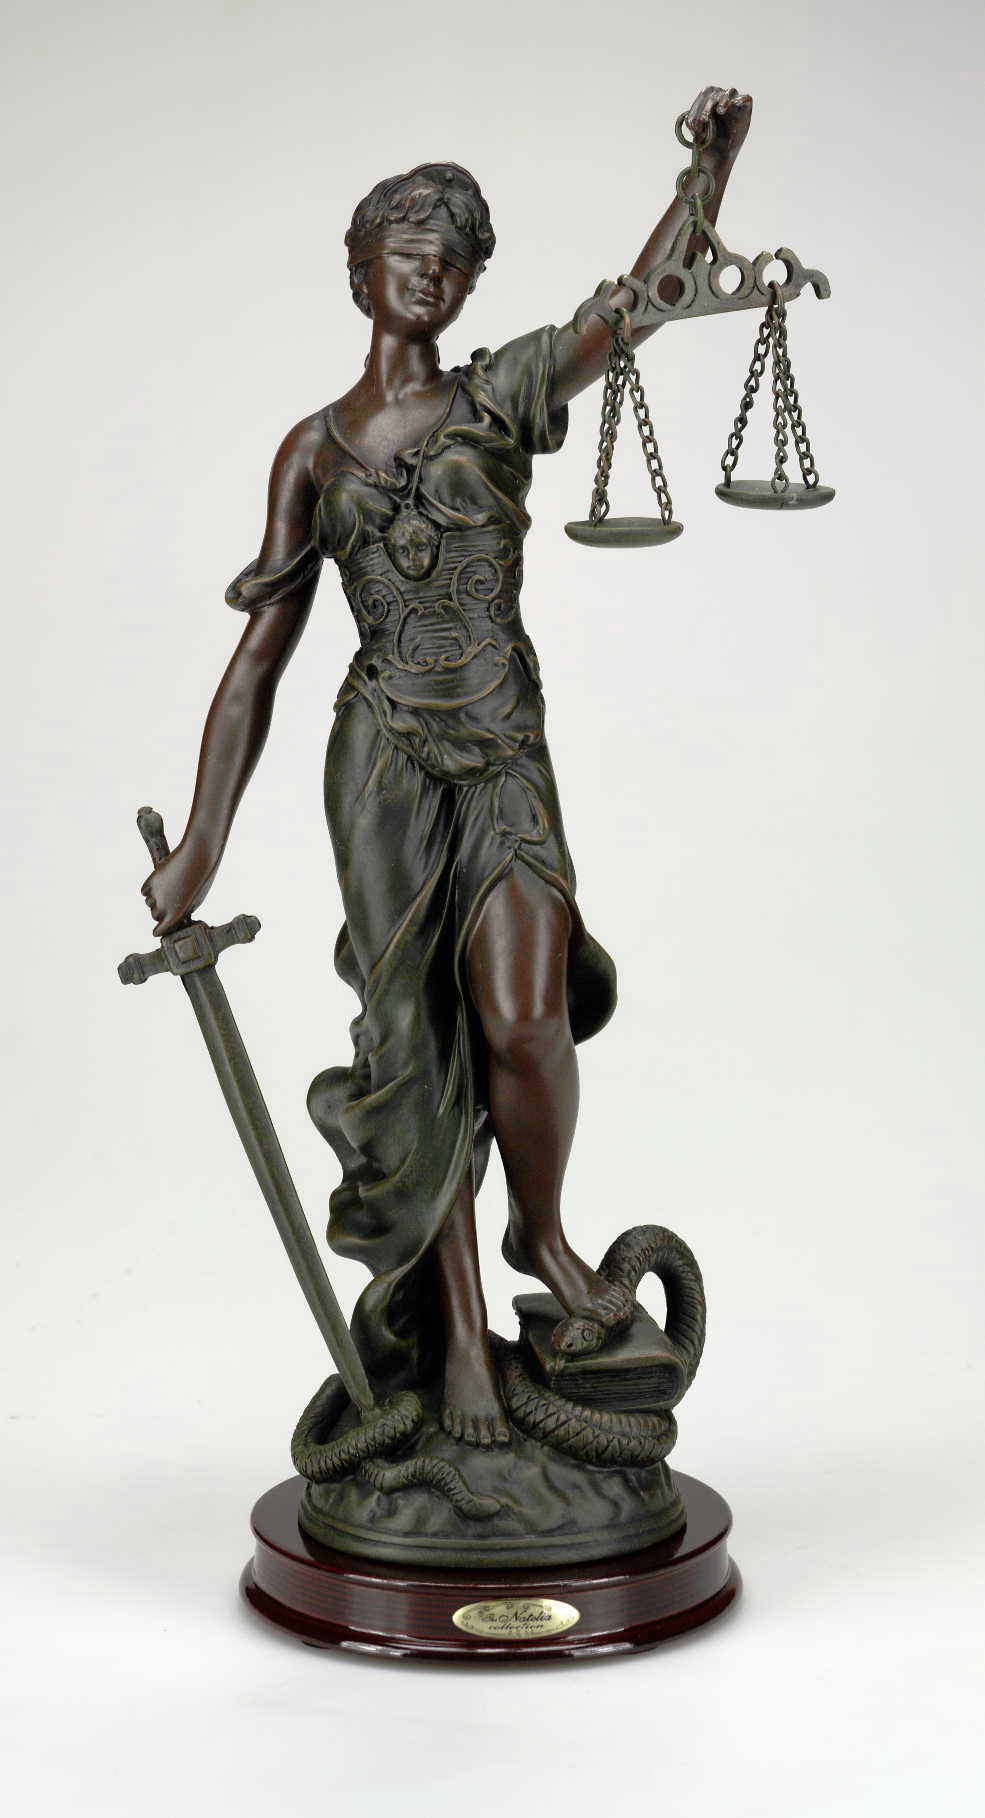 Blind Lady Justice Images Lady Justice is also made